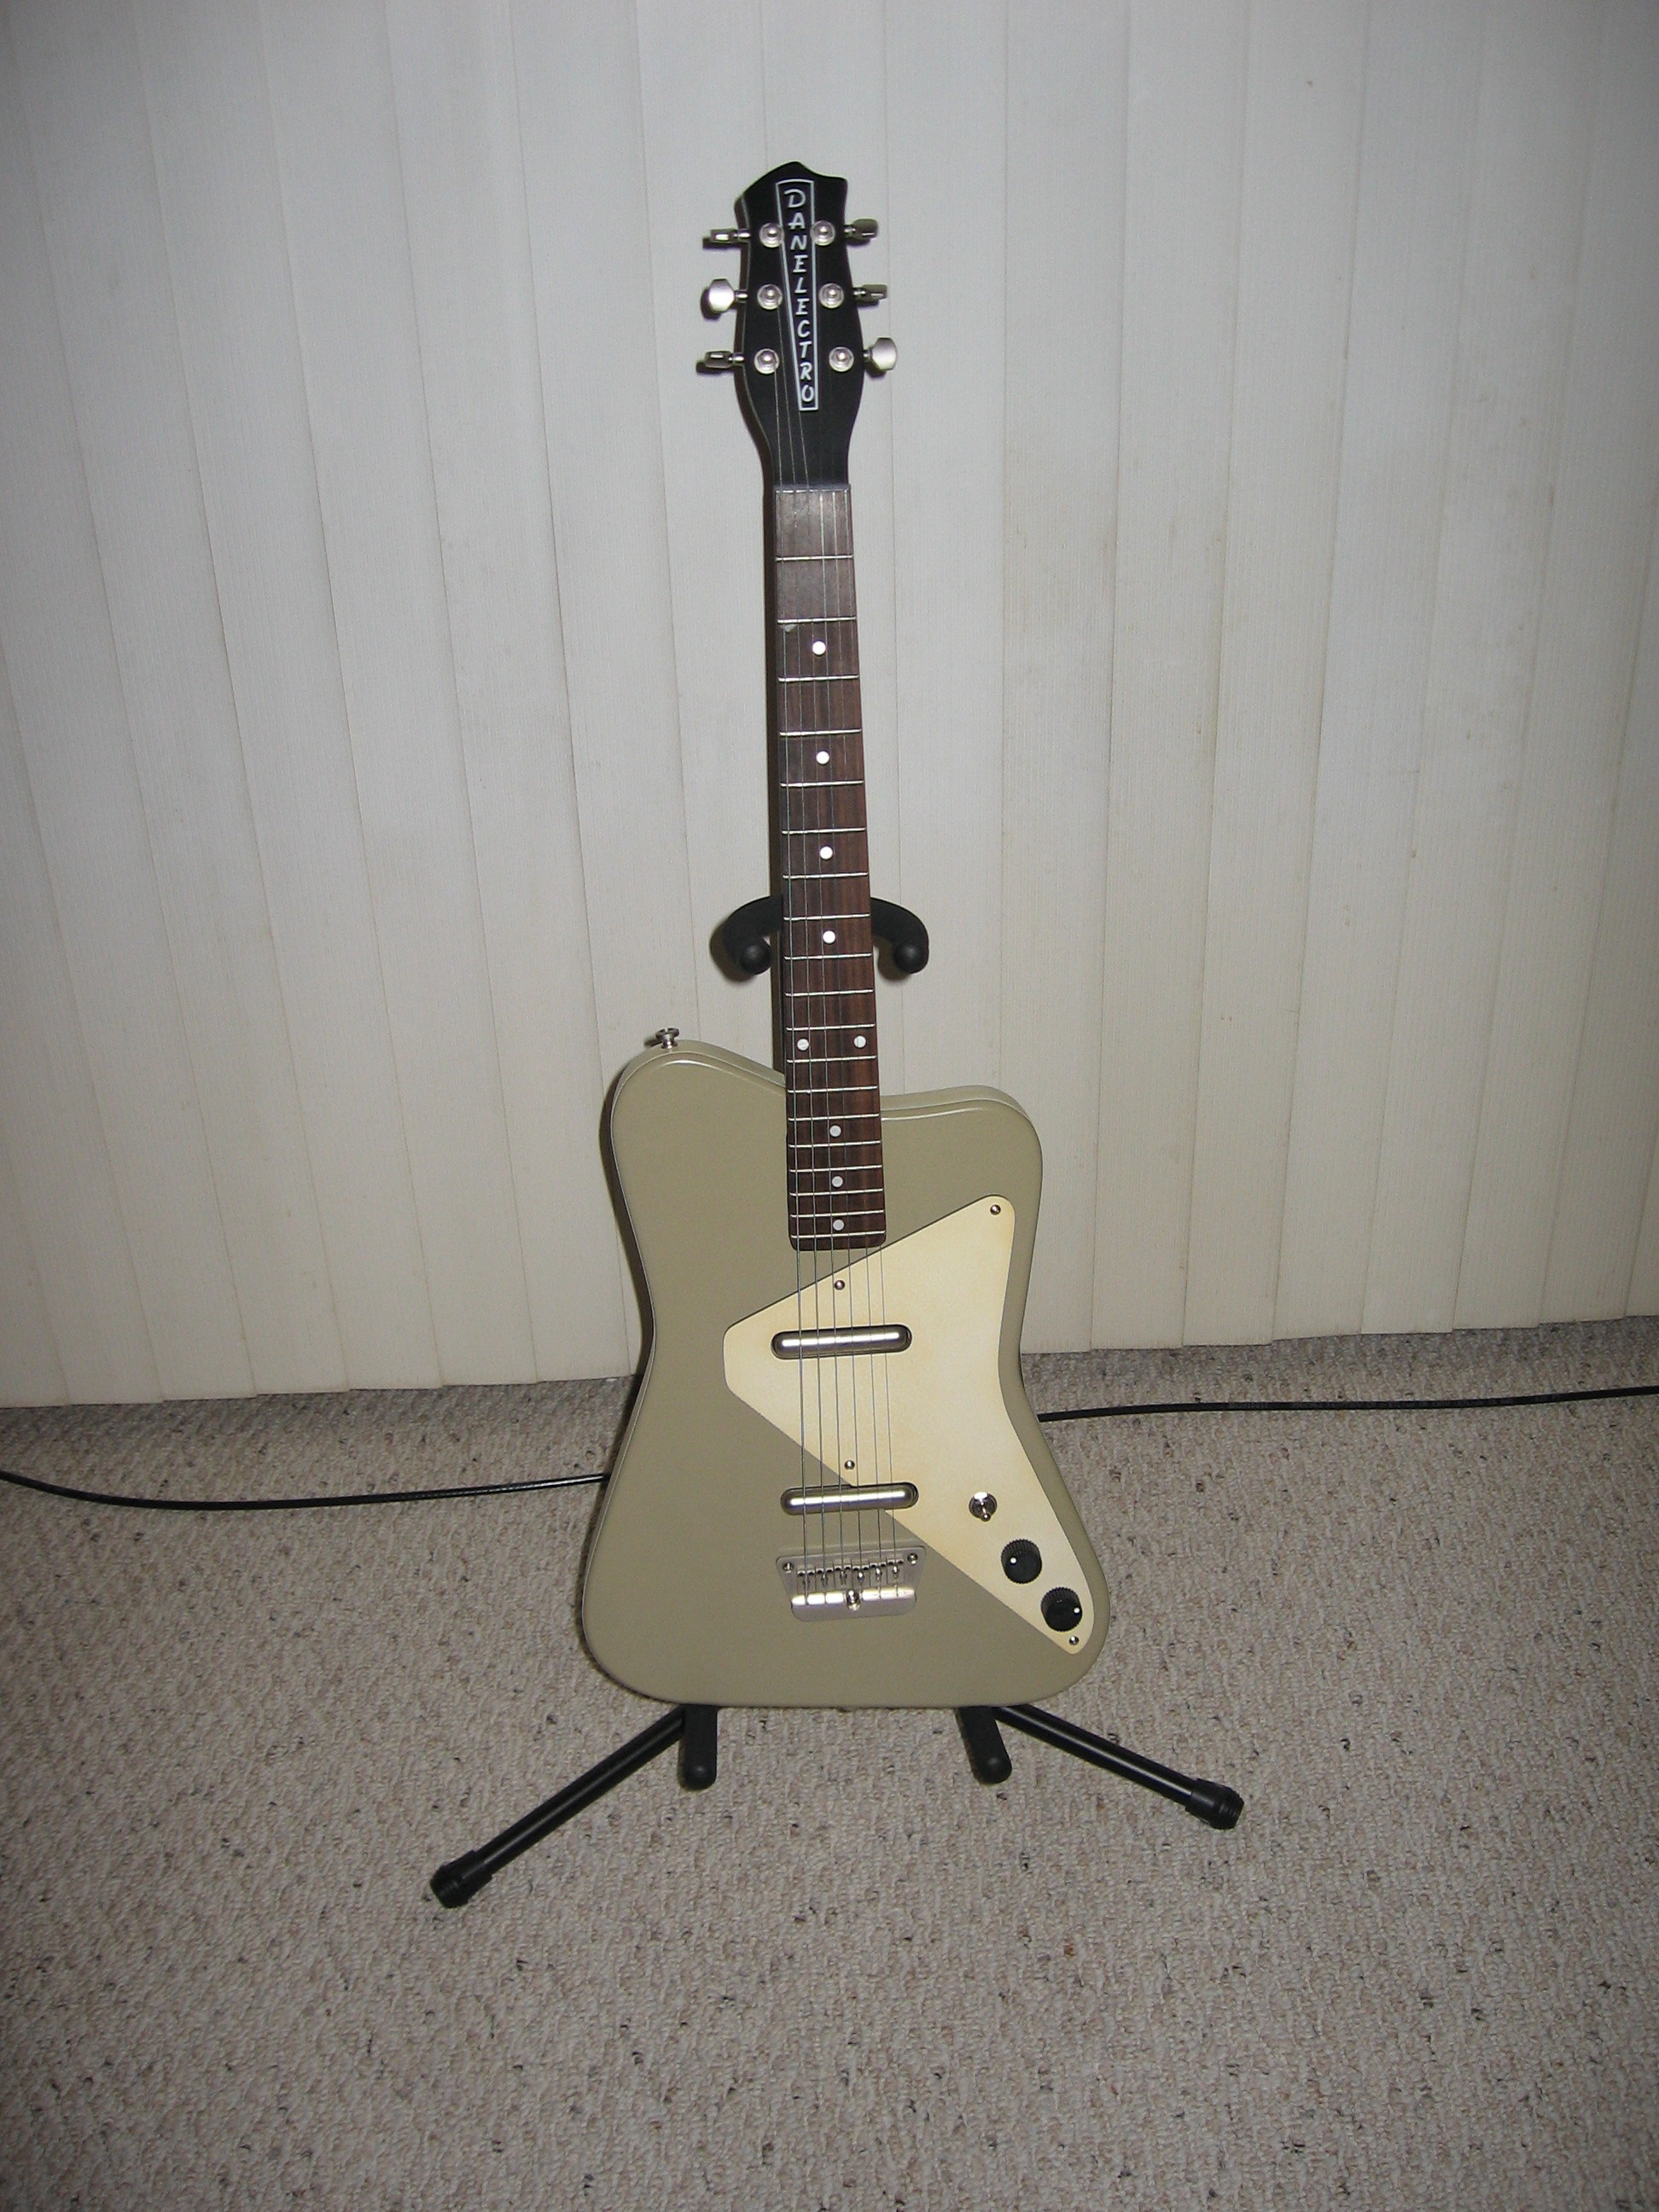 Danelectro_Dano_Pro_%28reissued_in_2007%29 Danelectro Dano Pro Wiring Diagram on t721 thermostat, technic ediphone, comp tach, comp billet distributor two wire, series ready run distributor,